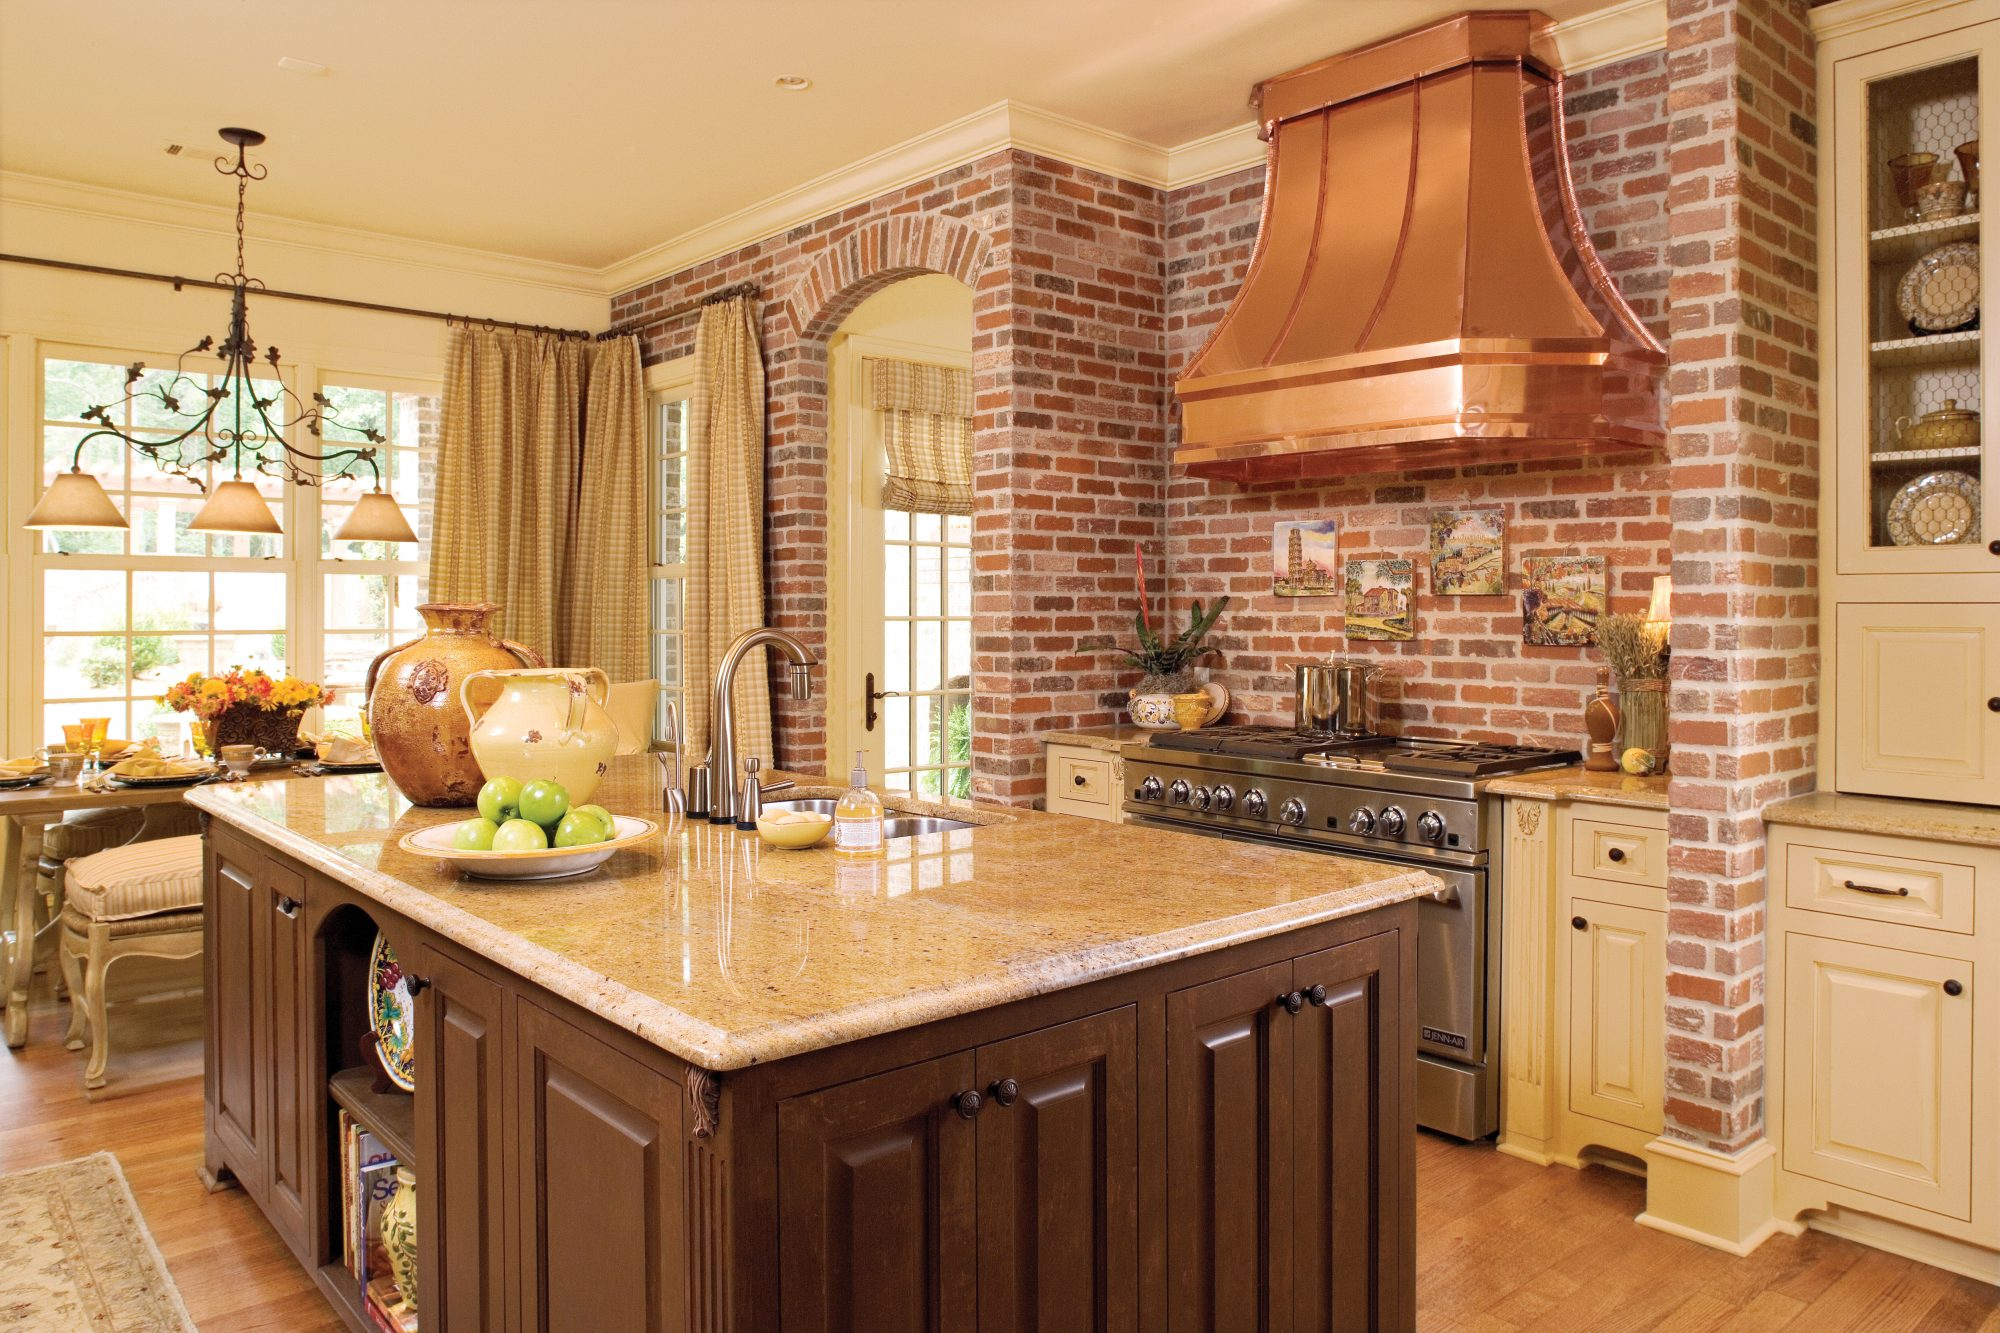 Brick and copper kitchen